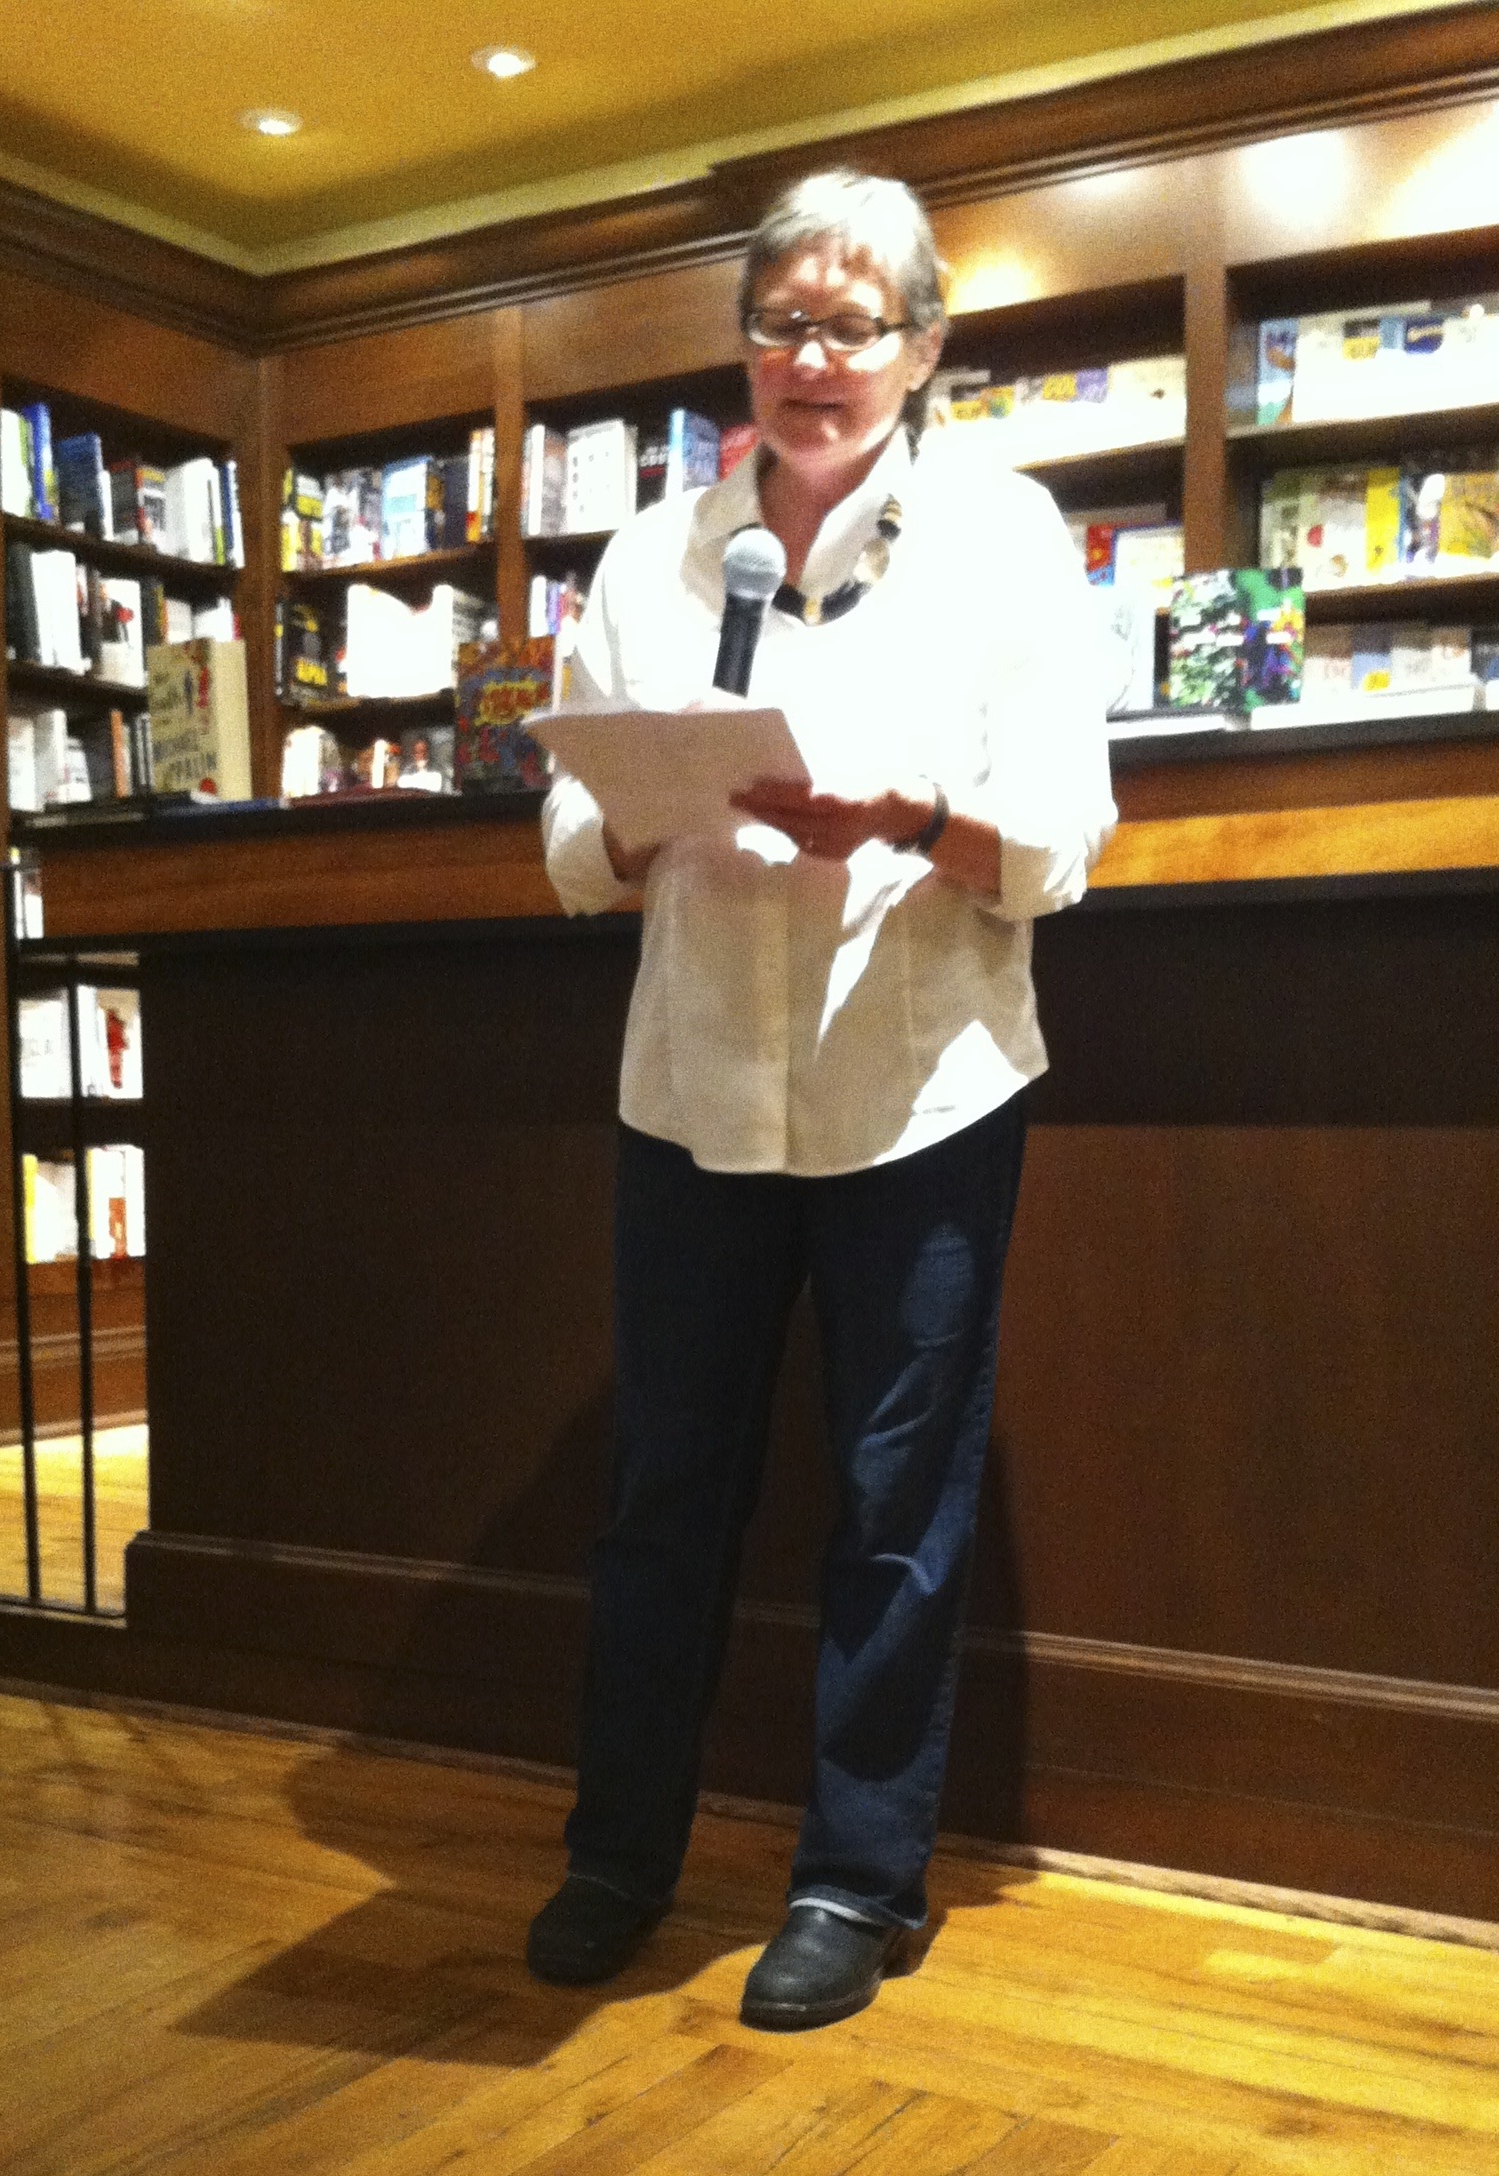 Reading at the launch party for Sterling #4. Photo taken by my friend and fellow writer, Leslie Carlin